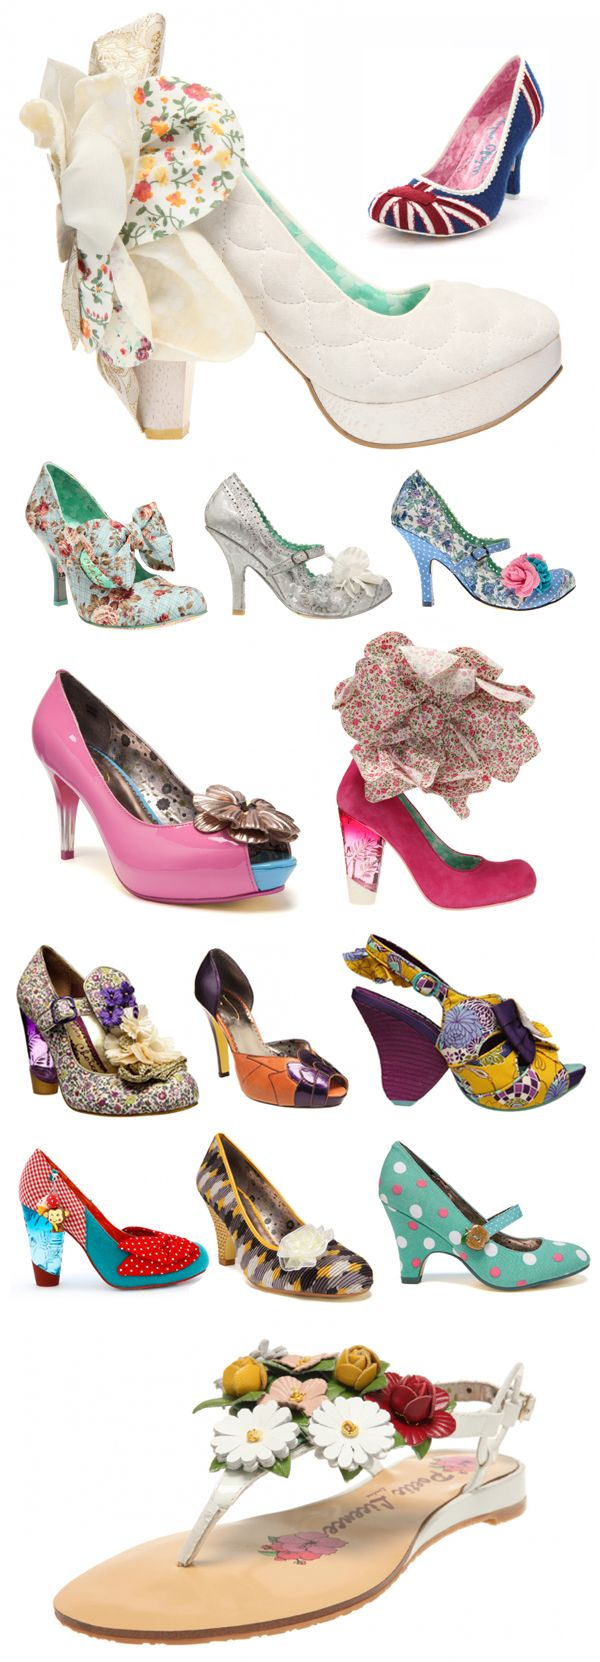 Irregular-Choice, some are amazing, some are nuts, some are too much. Wonder if they are also comfortable.